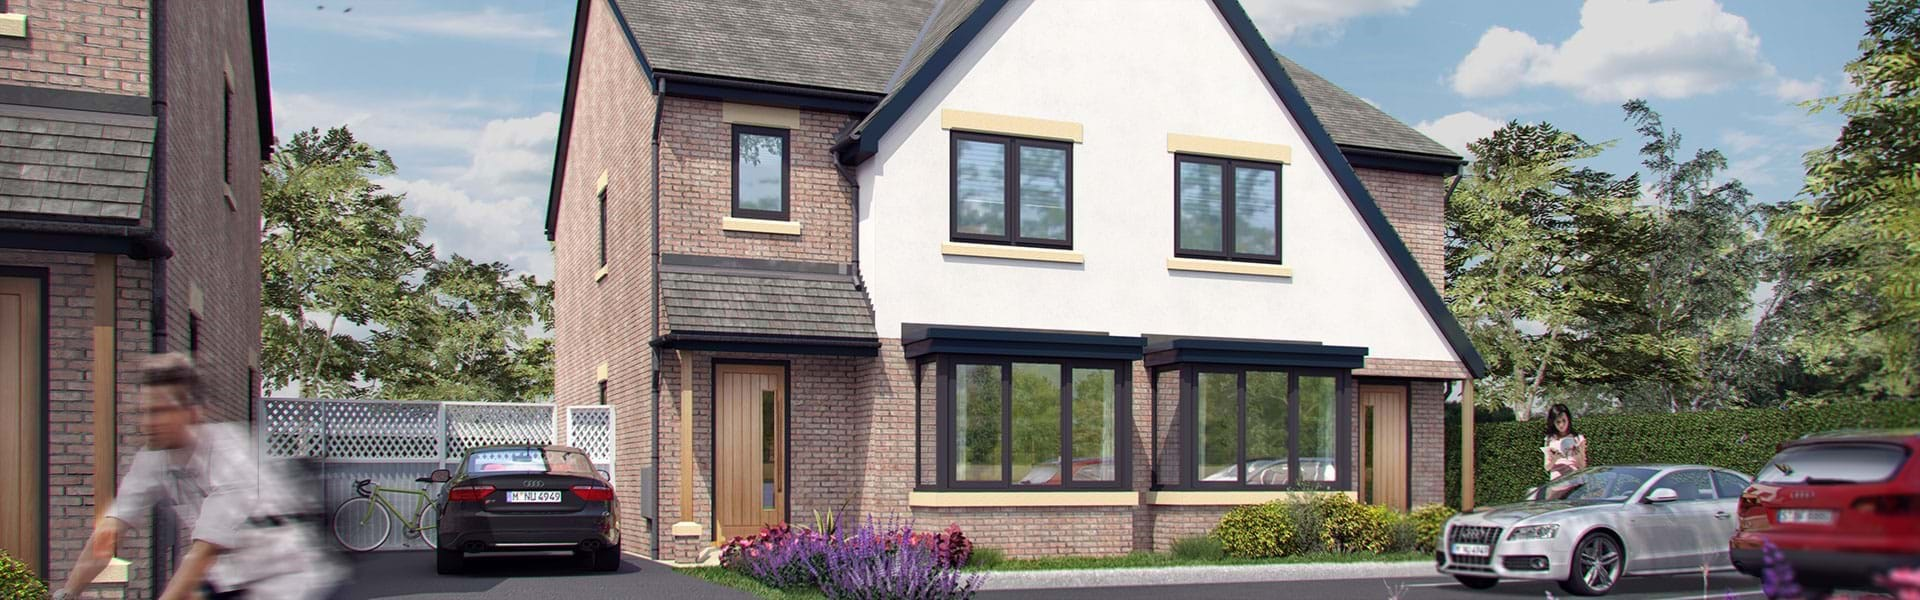 Manor Way, Crewe - A development of 10 four bedroom detached homes.